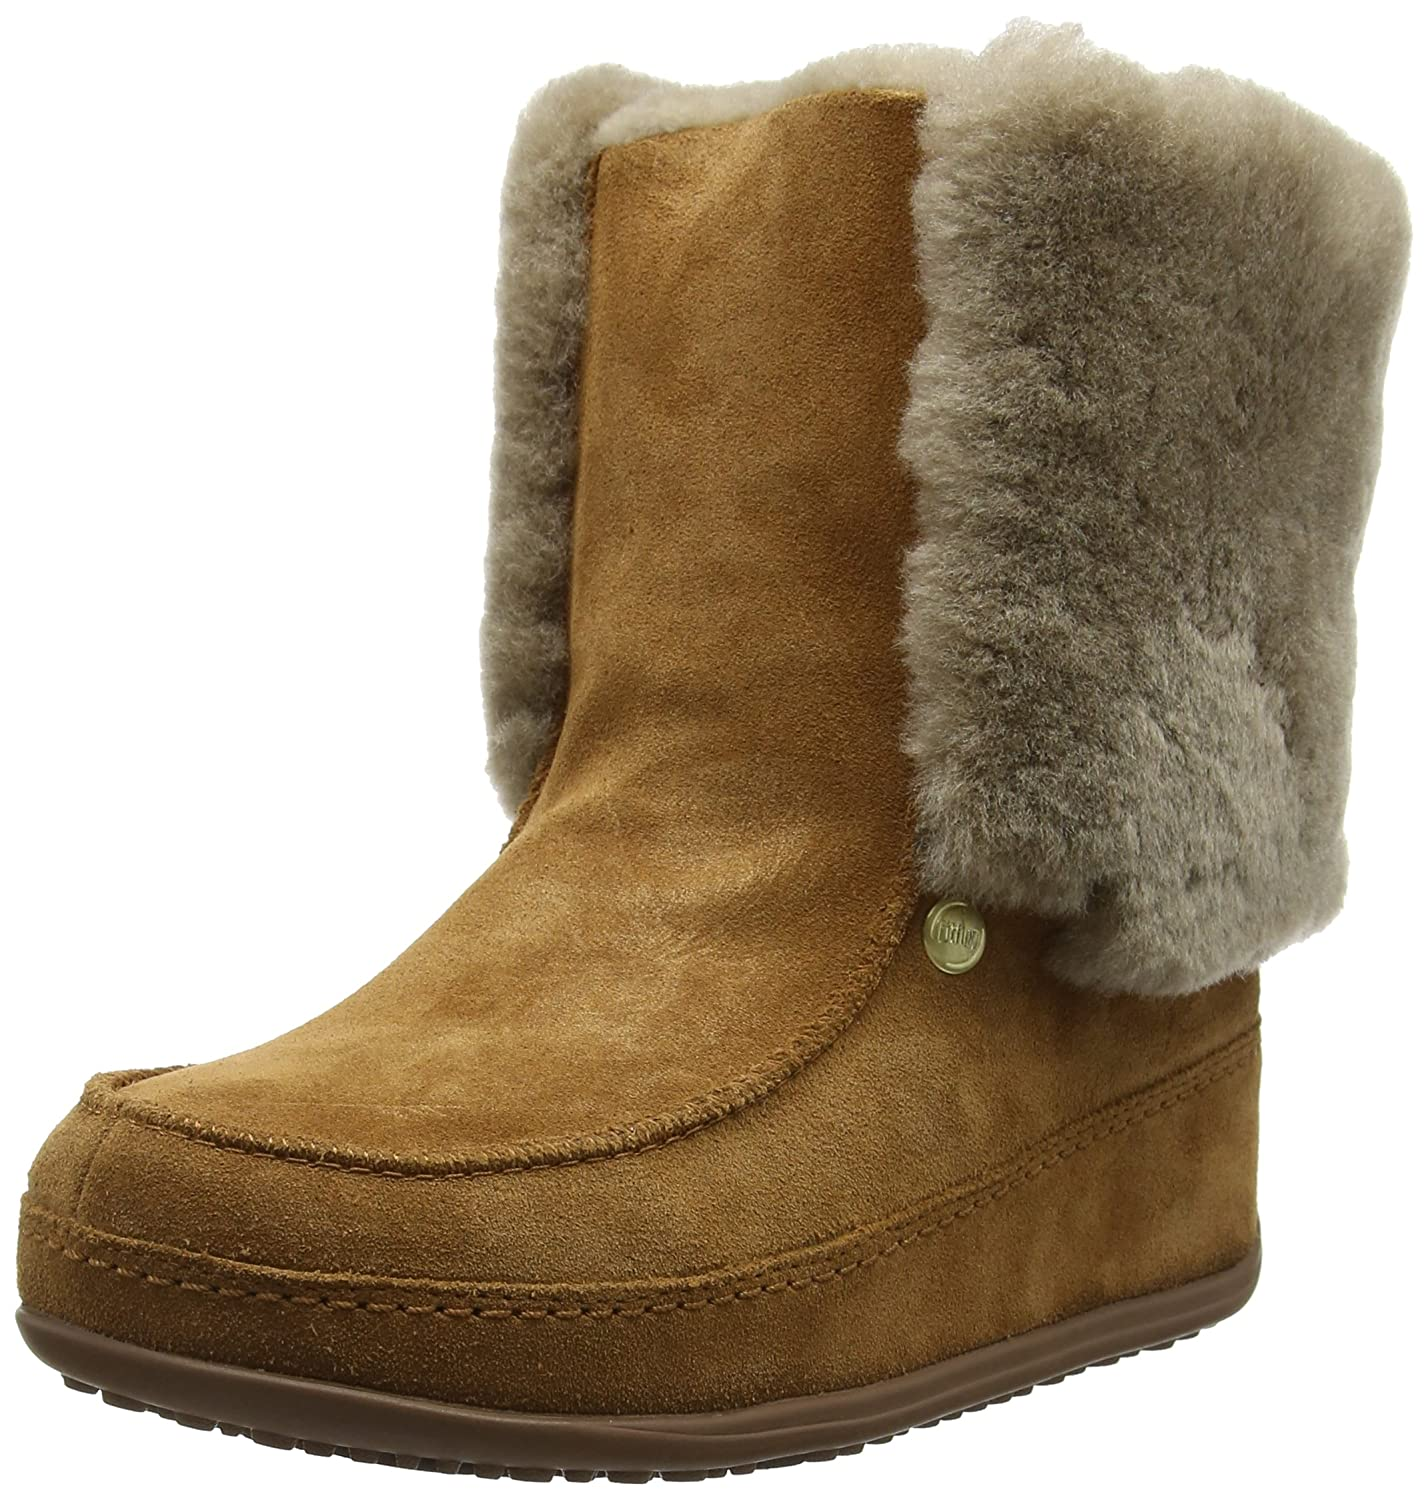 FitFlop Supercuff Mukluk Shorty Boot